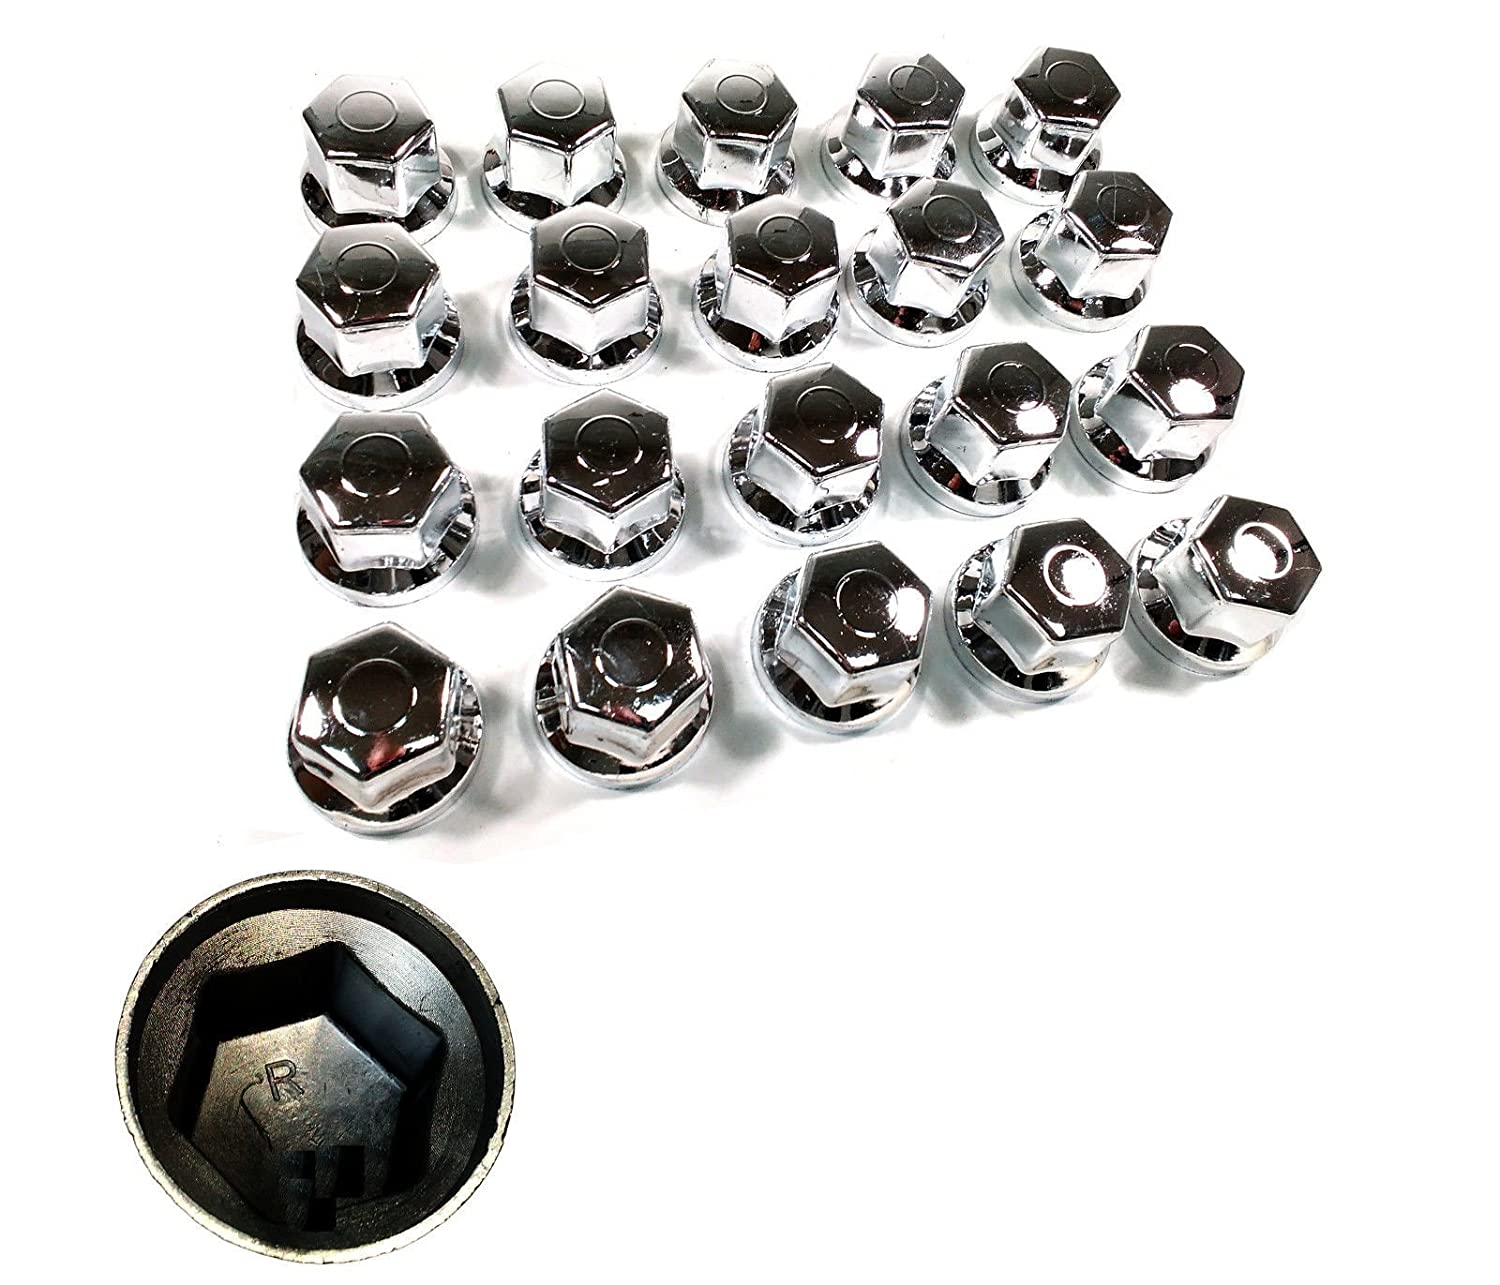 60 PCS X 32 MM WHEEL NUT COVER CAPS CHROME FIT FOR TRUCKS TRAILERS flexzone